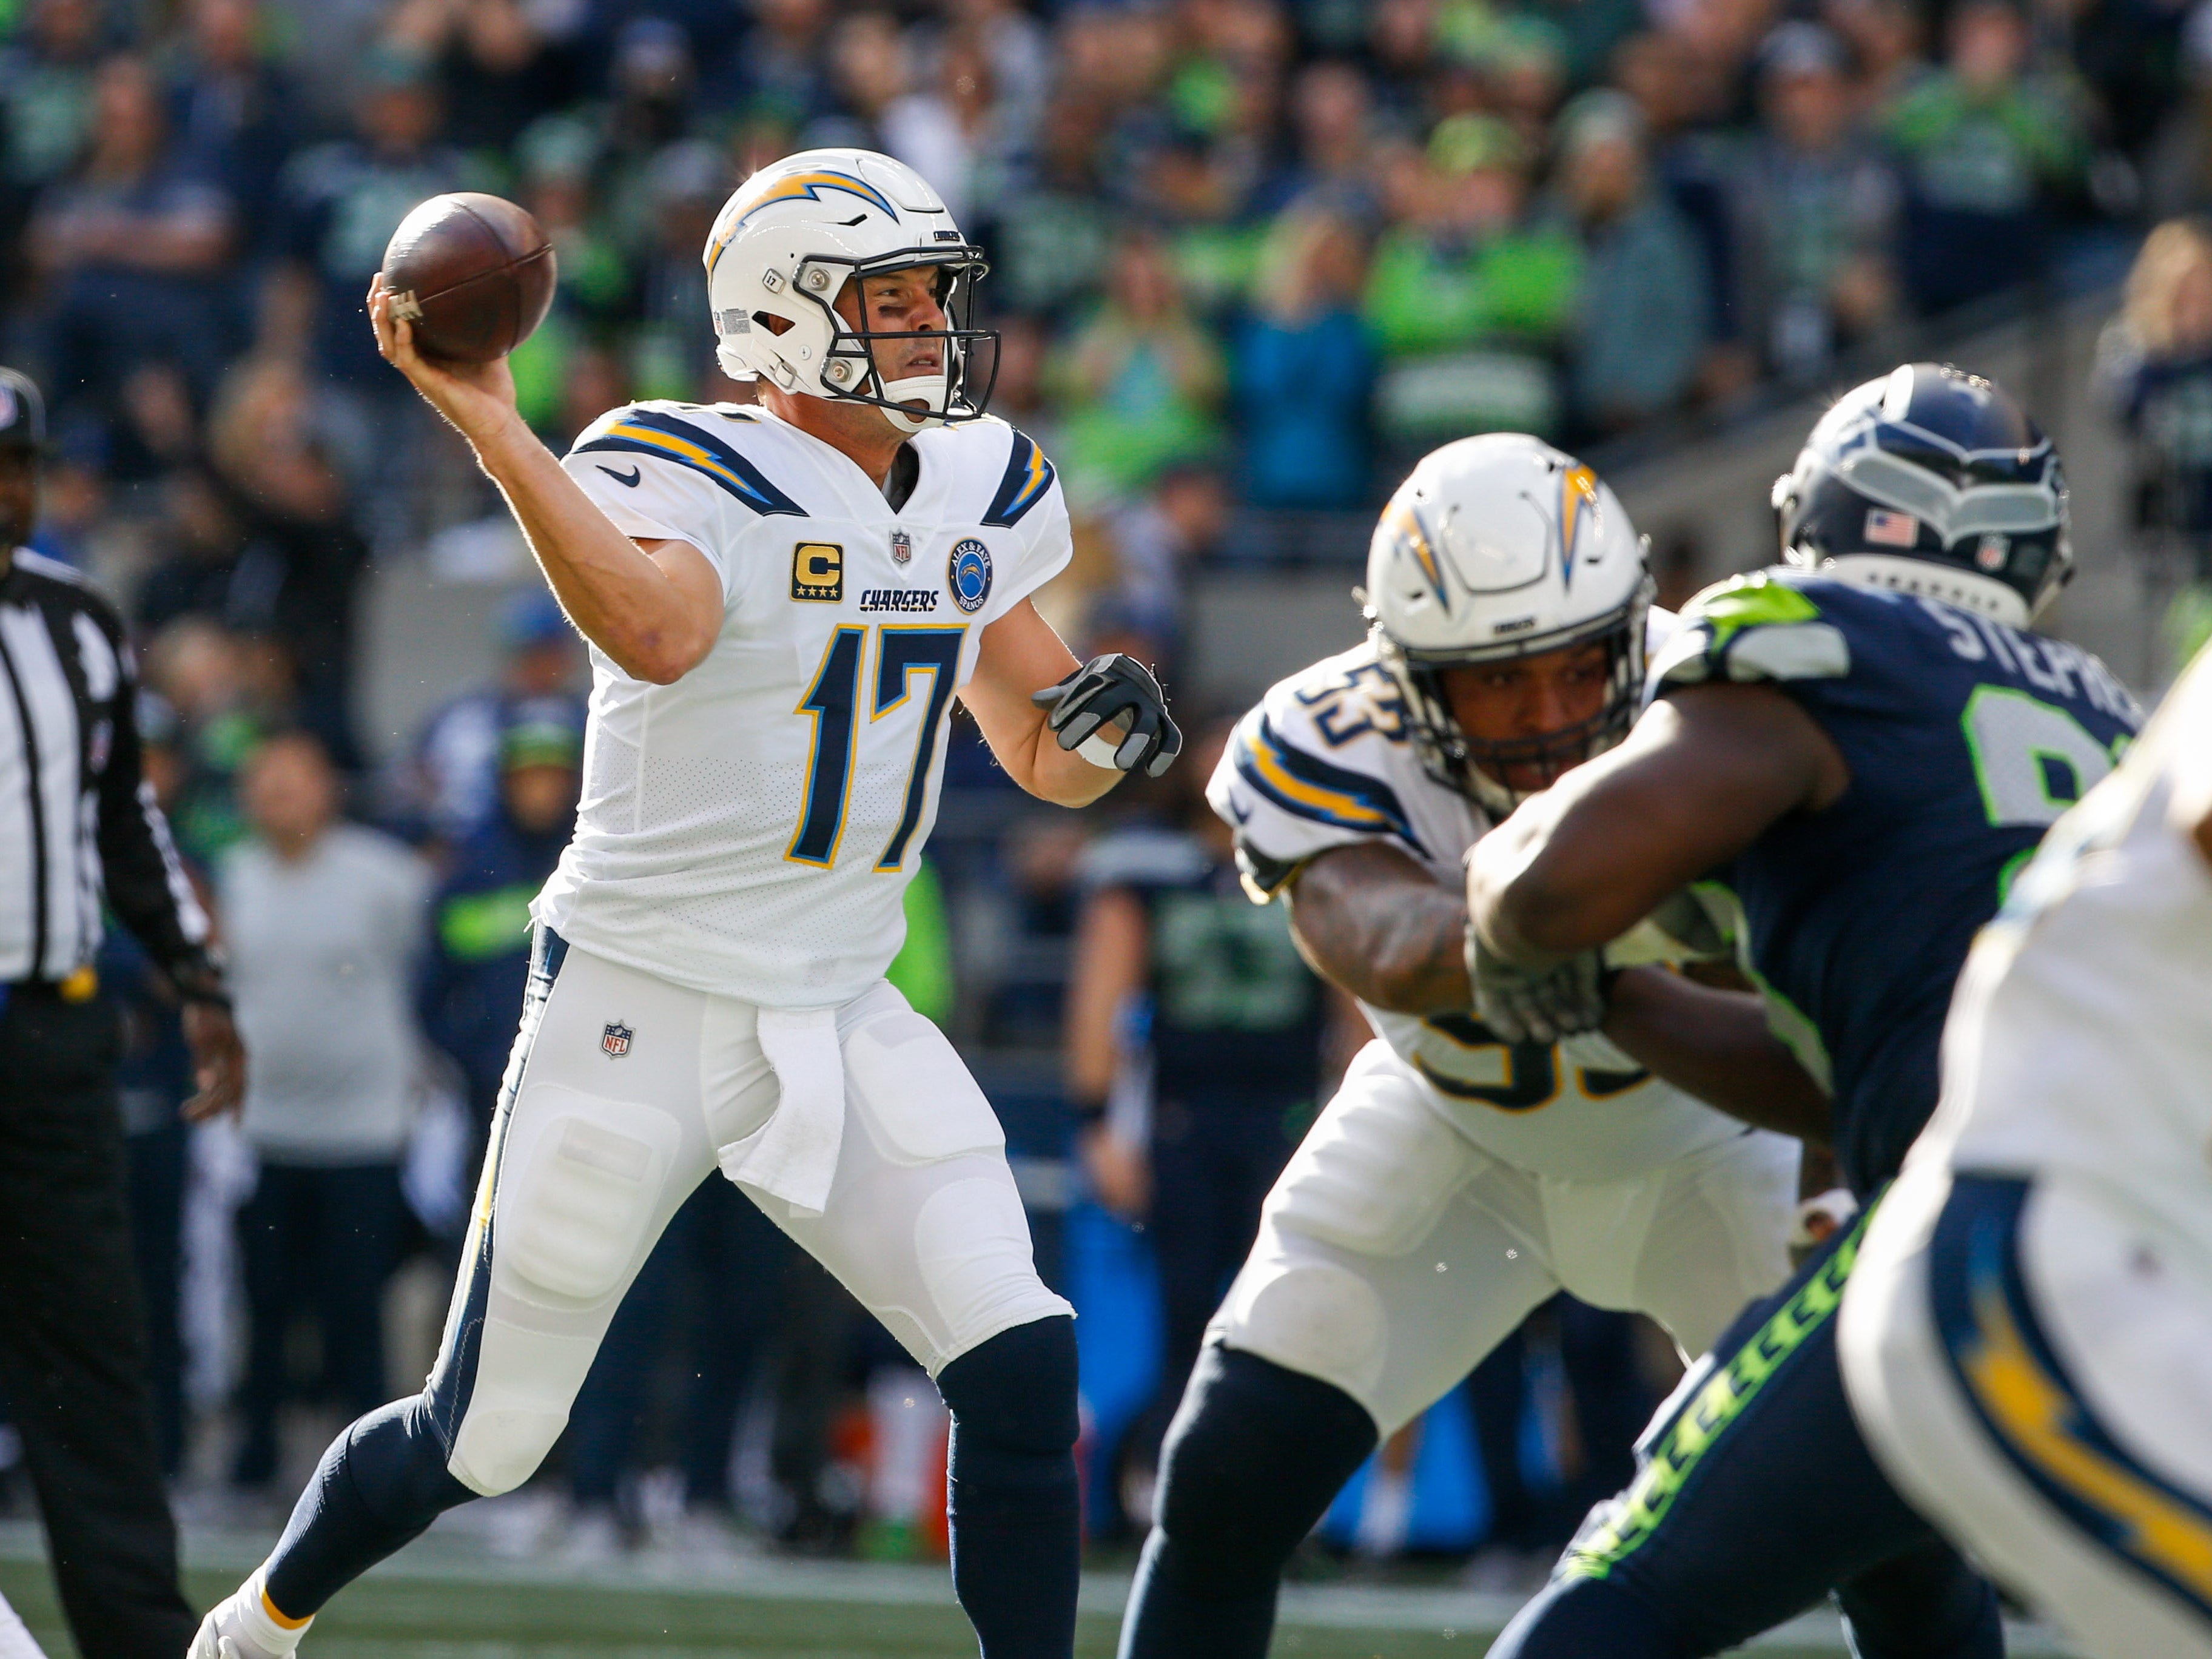 Los Angeles Chargers quarterback Philip Rivers (17) drops back to pass against the Seattle Seahawks in  the first quarter at CenturyLink Field. 20181104_lbm_sn8_038.JPG